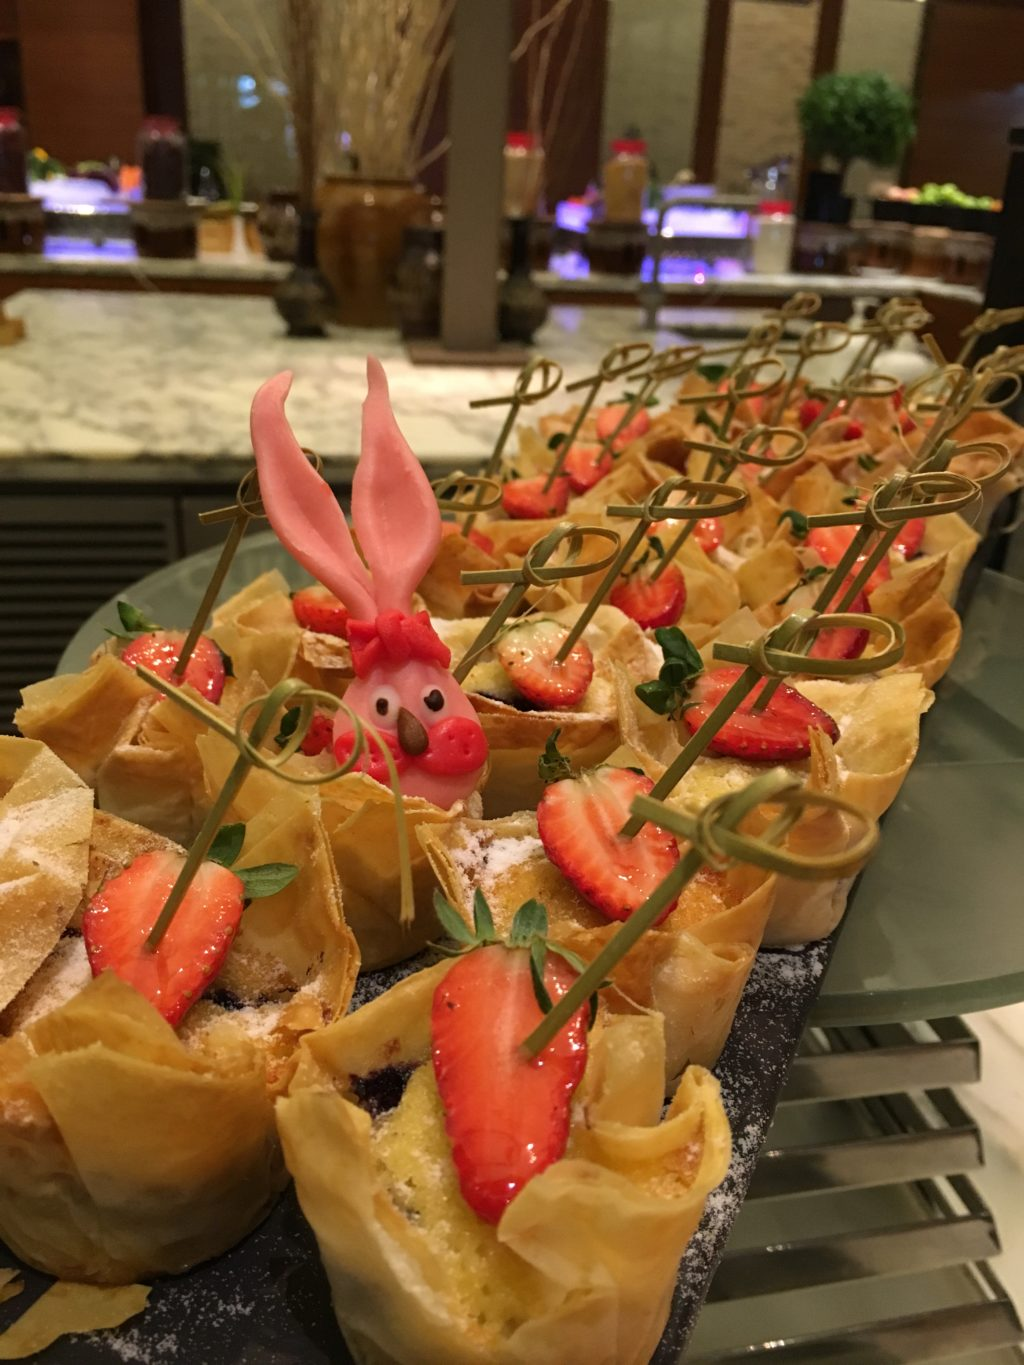 Pastries at buffet table with pink bunny at centre